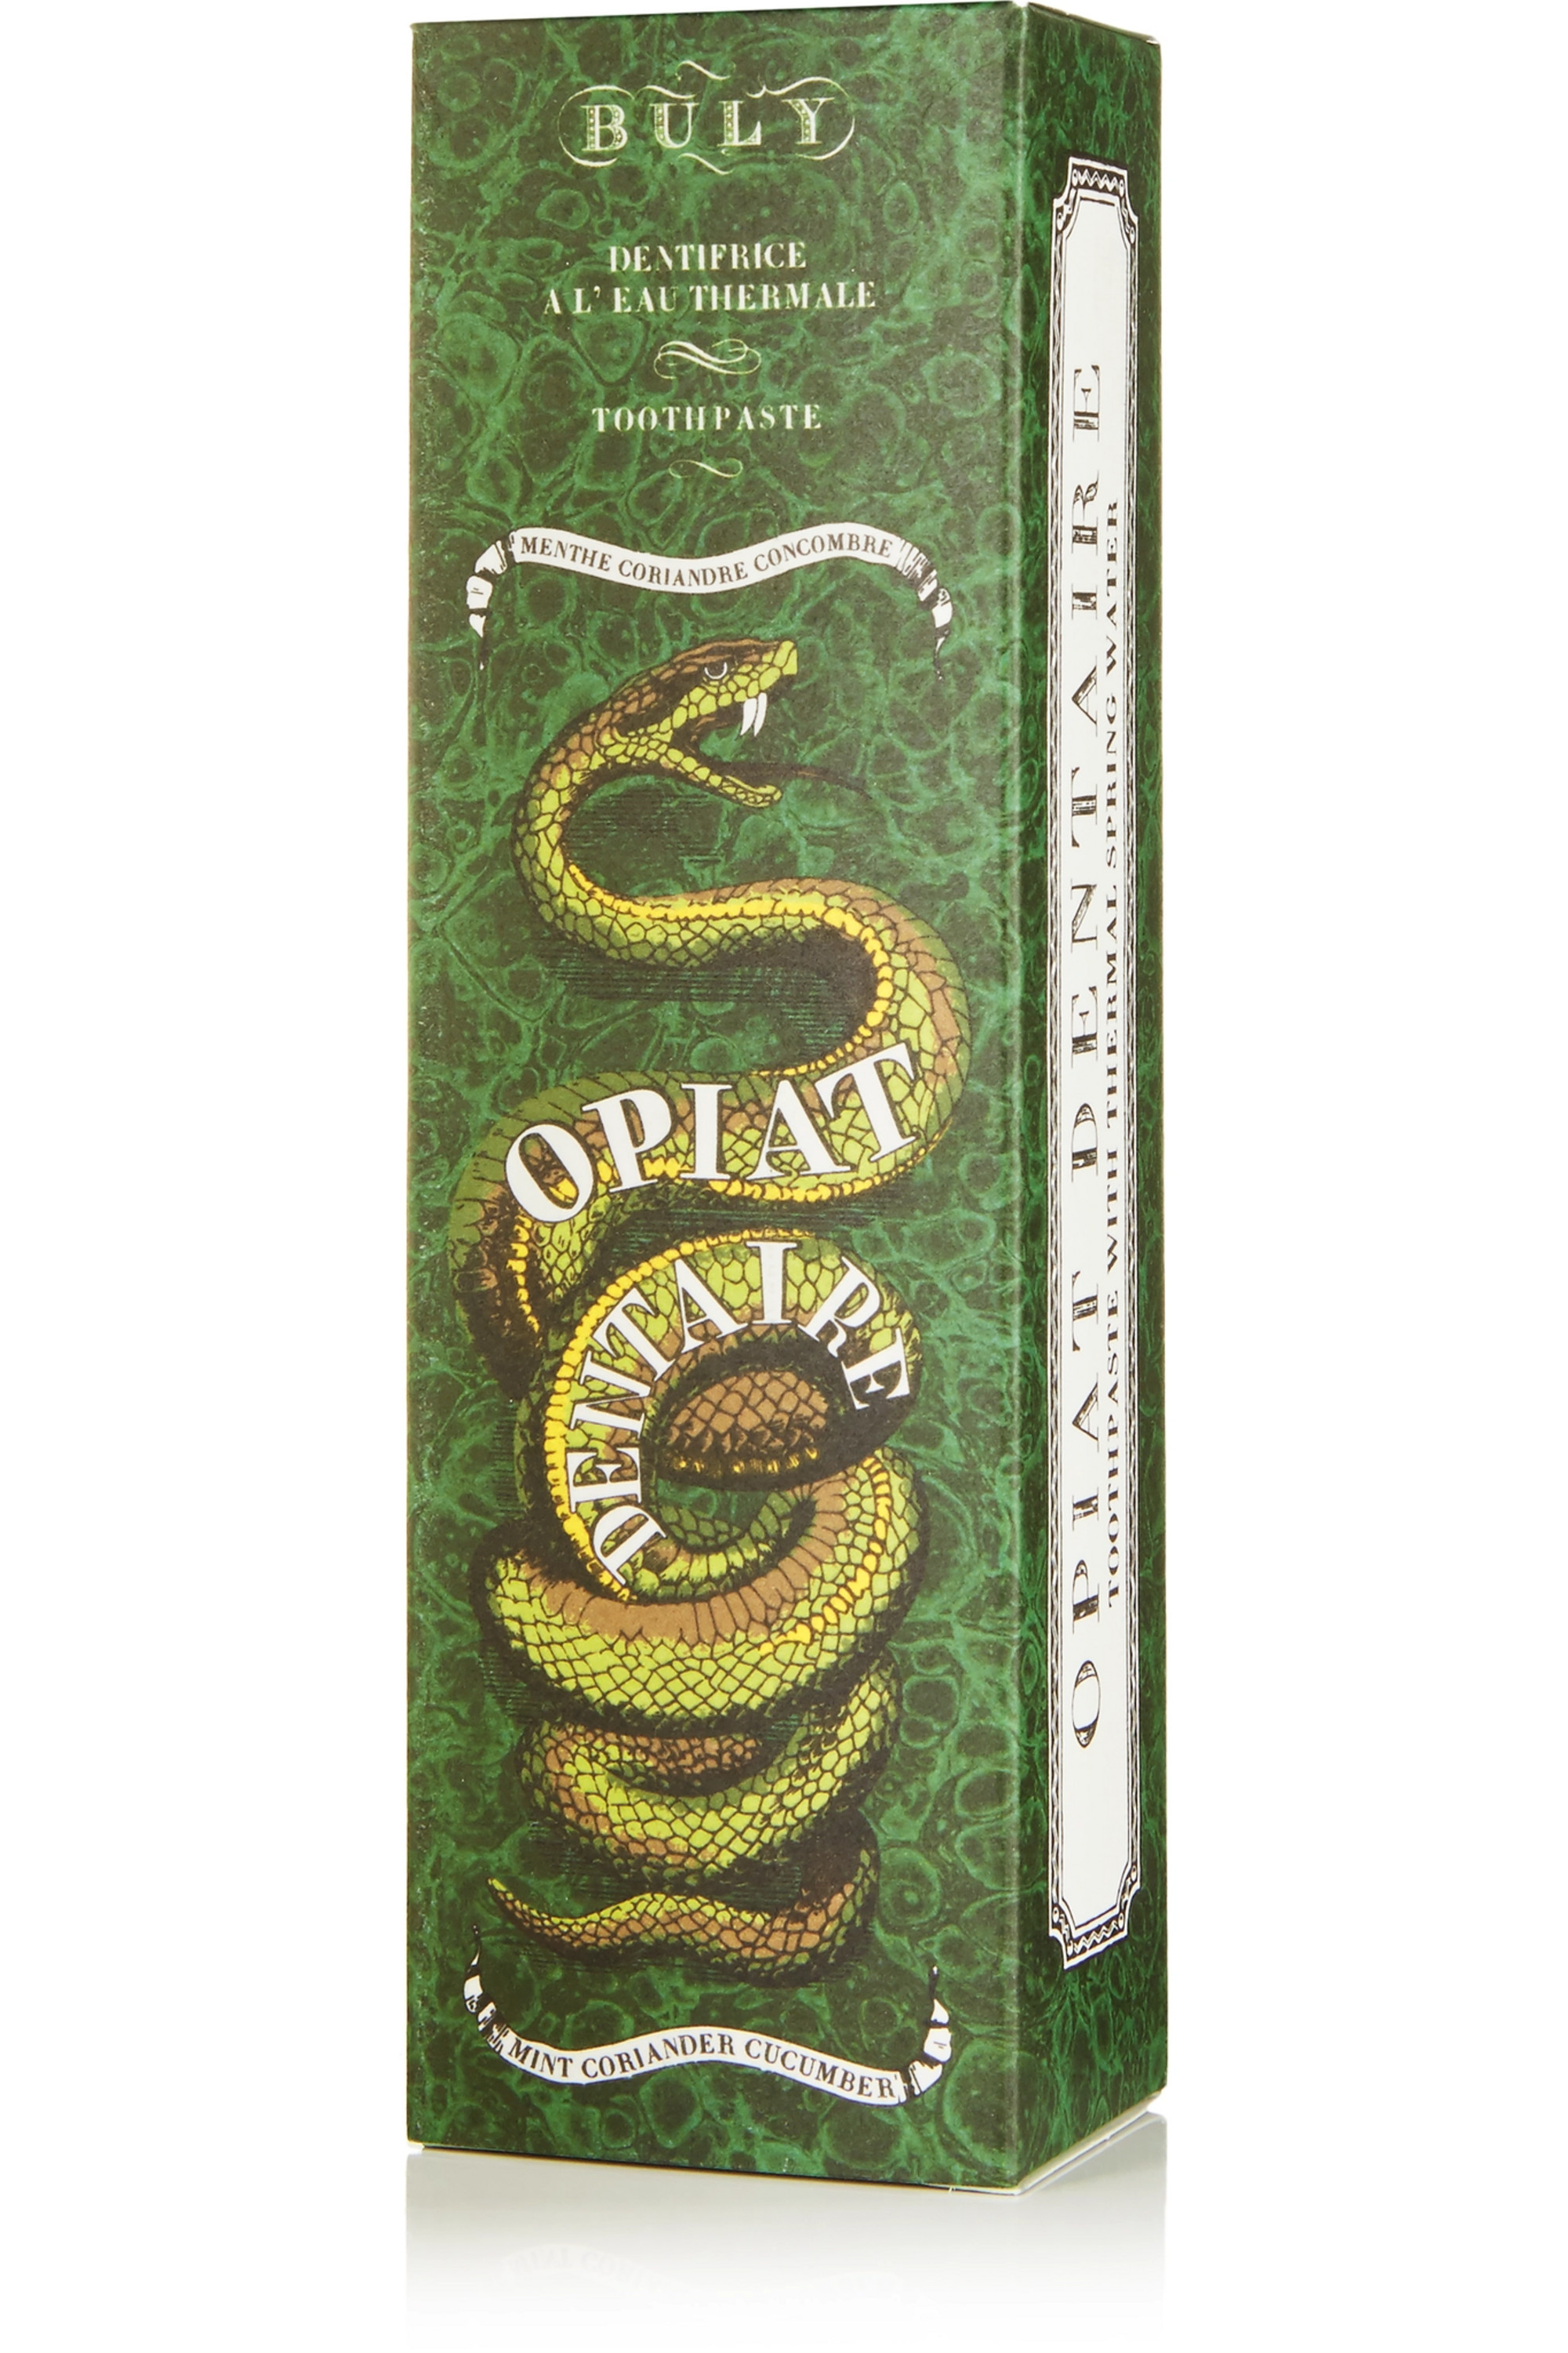 Buly 1803 Opiat Dentaire Toothpaste, 75ml - Mint, Coriander and Cucumber